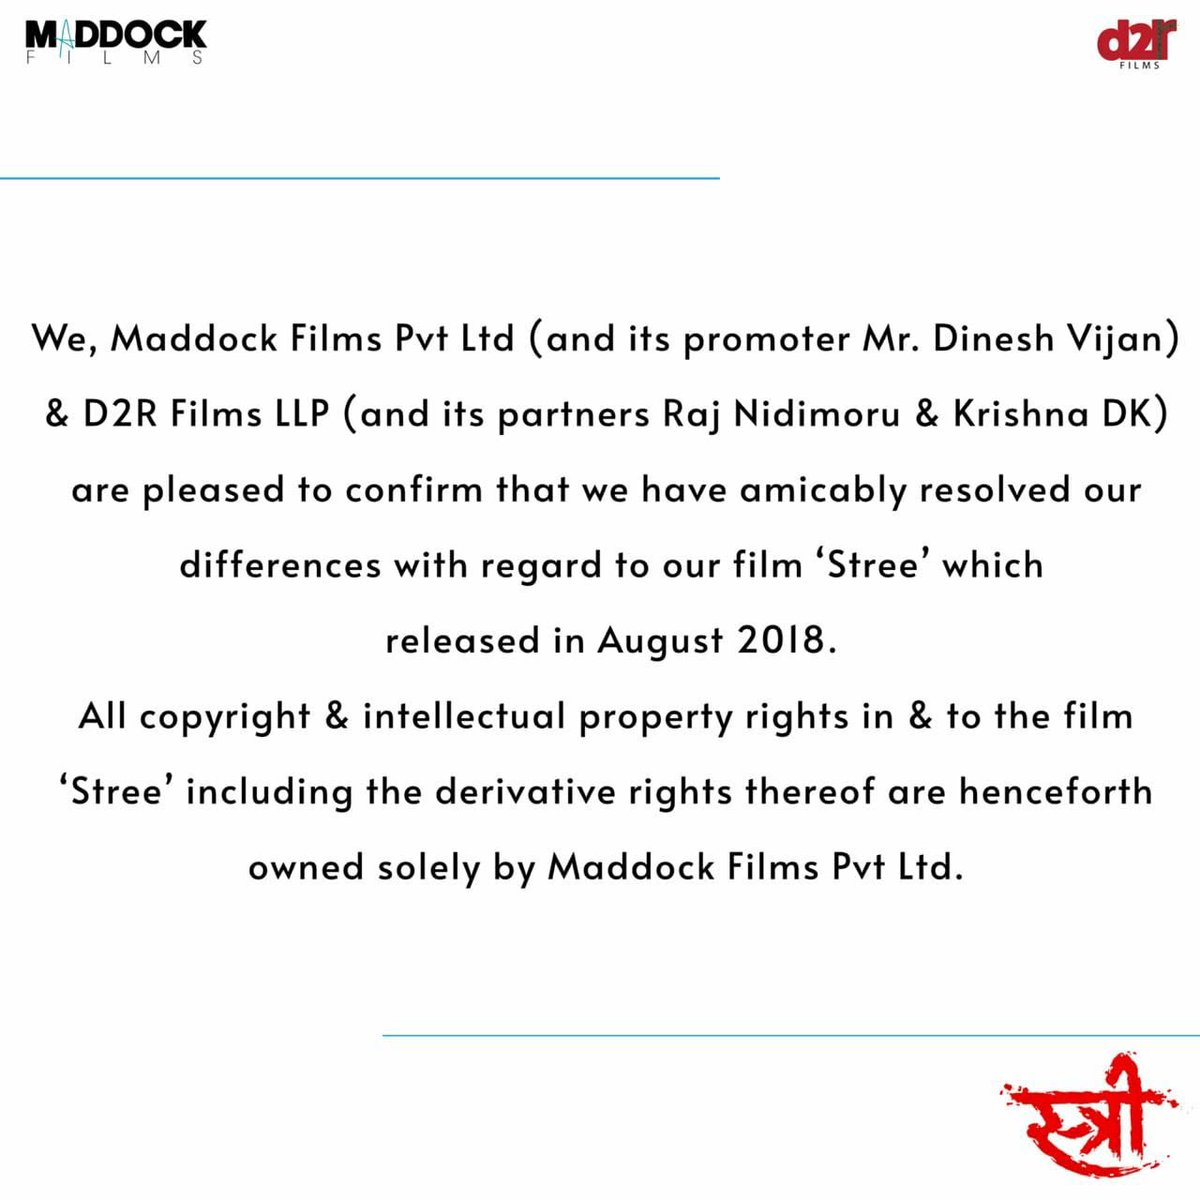 "Official statement from Maddock Films Pvt Ltd and D2R Films LLP in relation to the film ""Stree."" @Maddockfilms #DineshVijan @RajnDK @d2rfilms #stree"